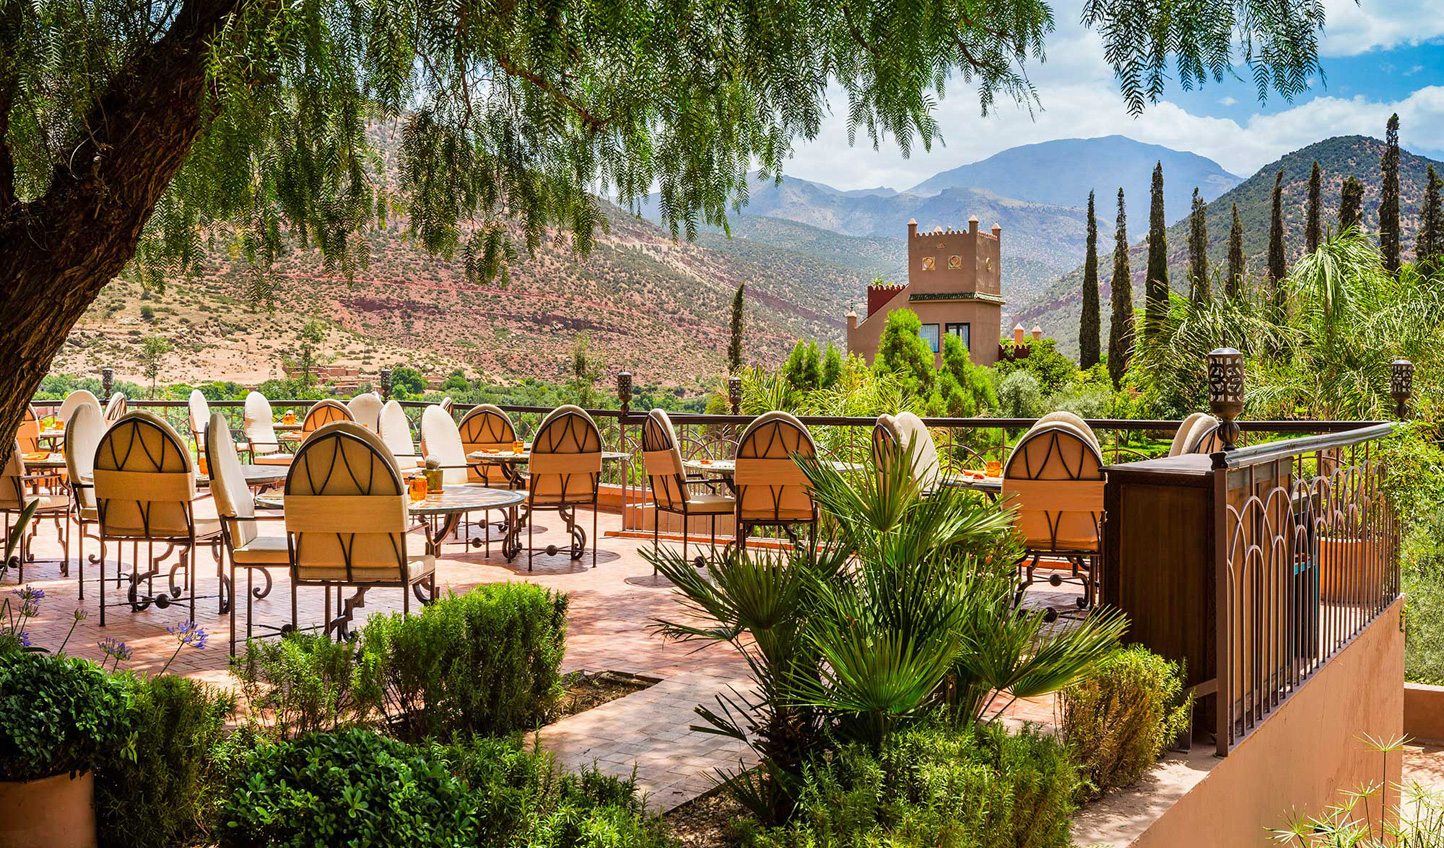 Arrive at the tranquility of Kasbah Tamadot and enjoy a drink in the sun